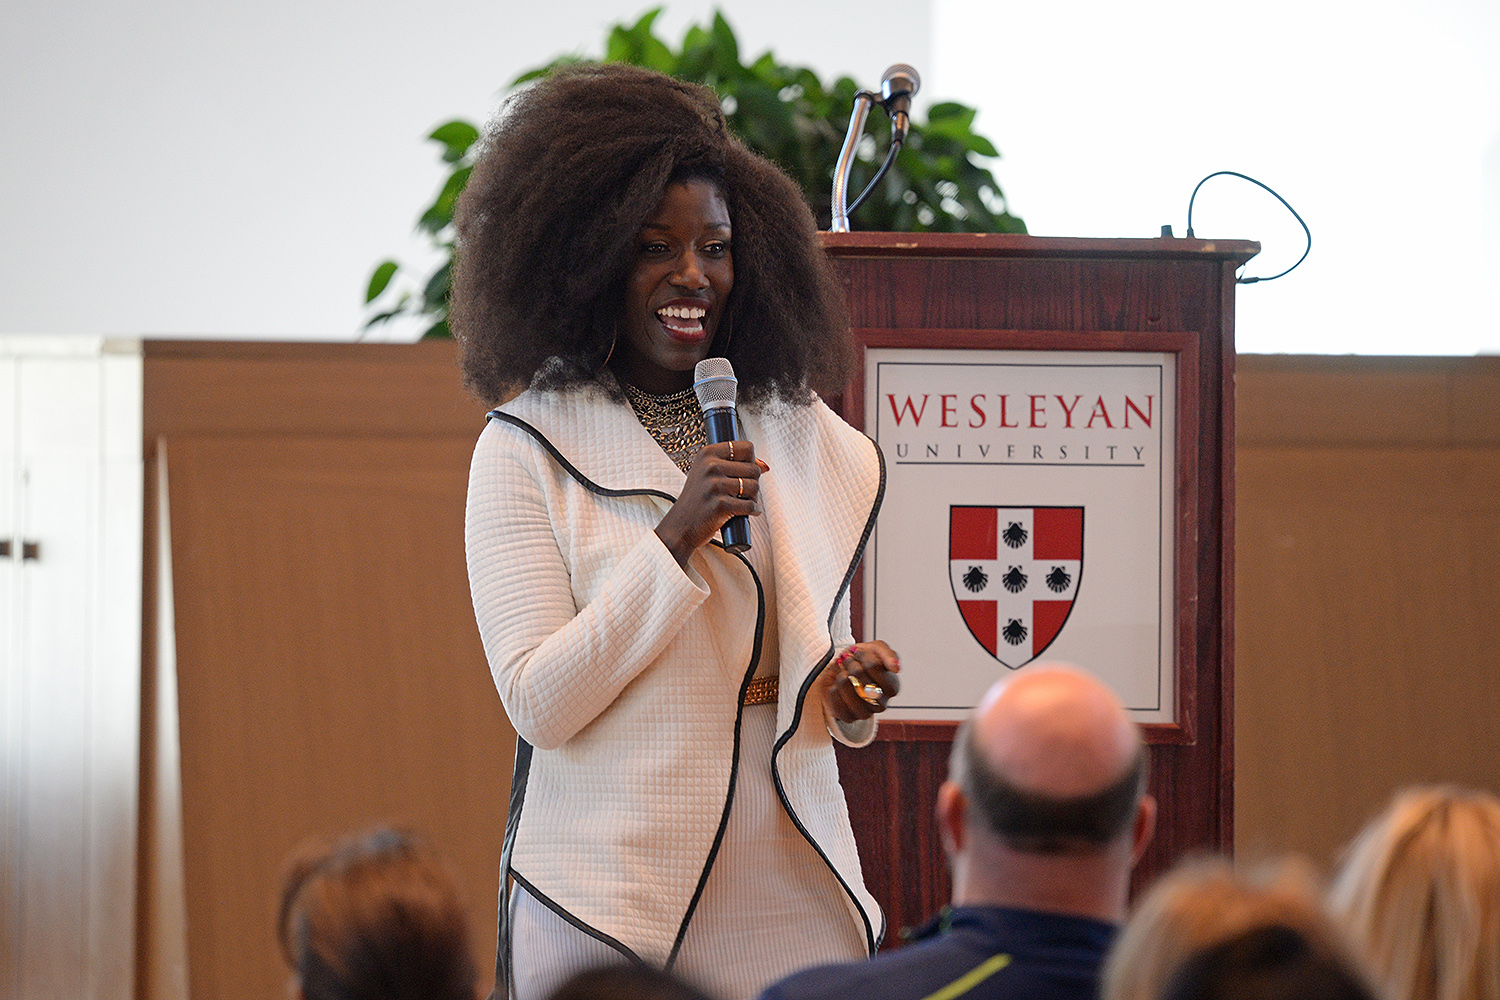 Bozoma Saint John '99, head of global consumer marketing for Apple Music and iTunes, delivered the WesFest keynote address on April 15 in Beckham Hall.